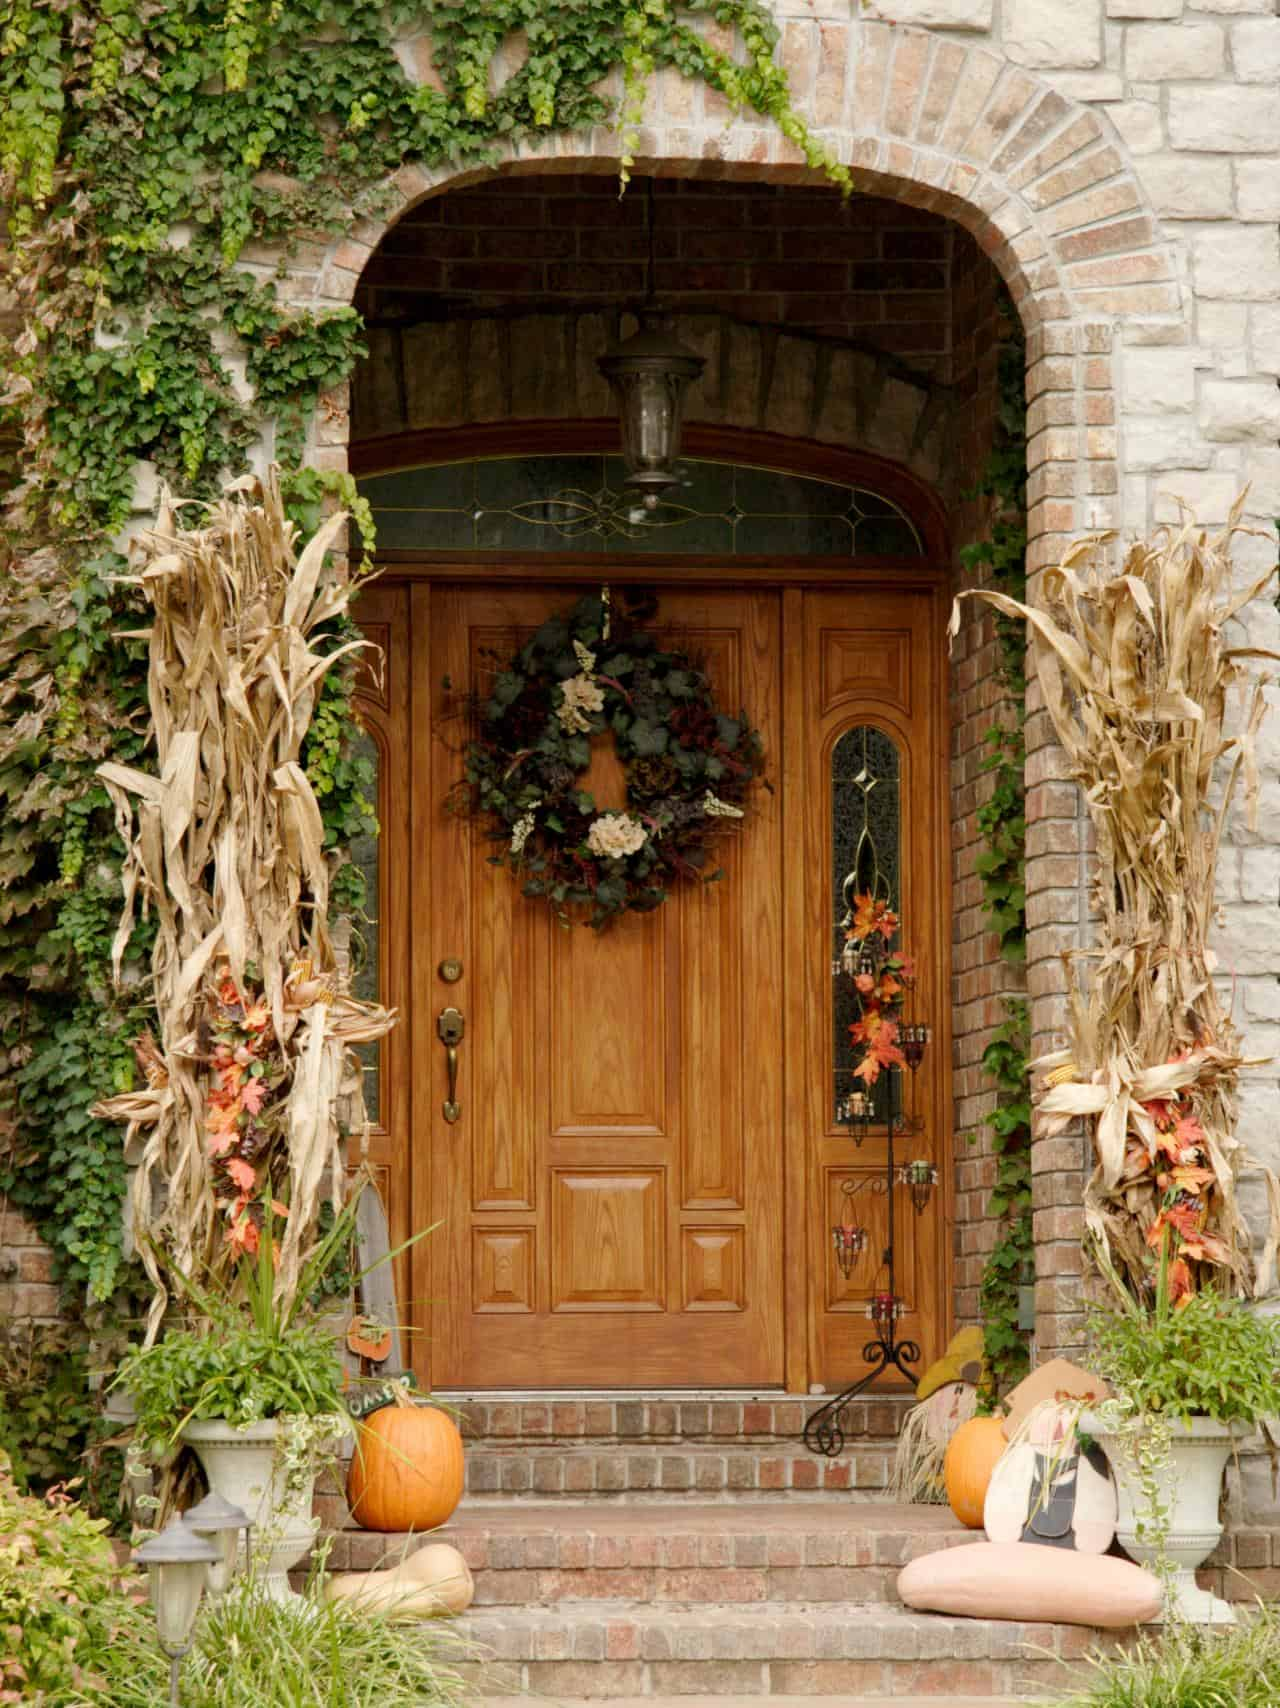 Tall dried corn stalks 15 Yard Decoration Ideas for Fall